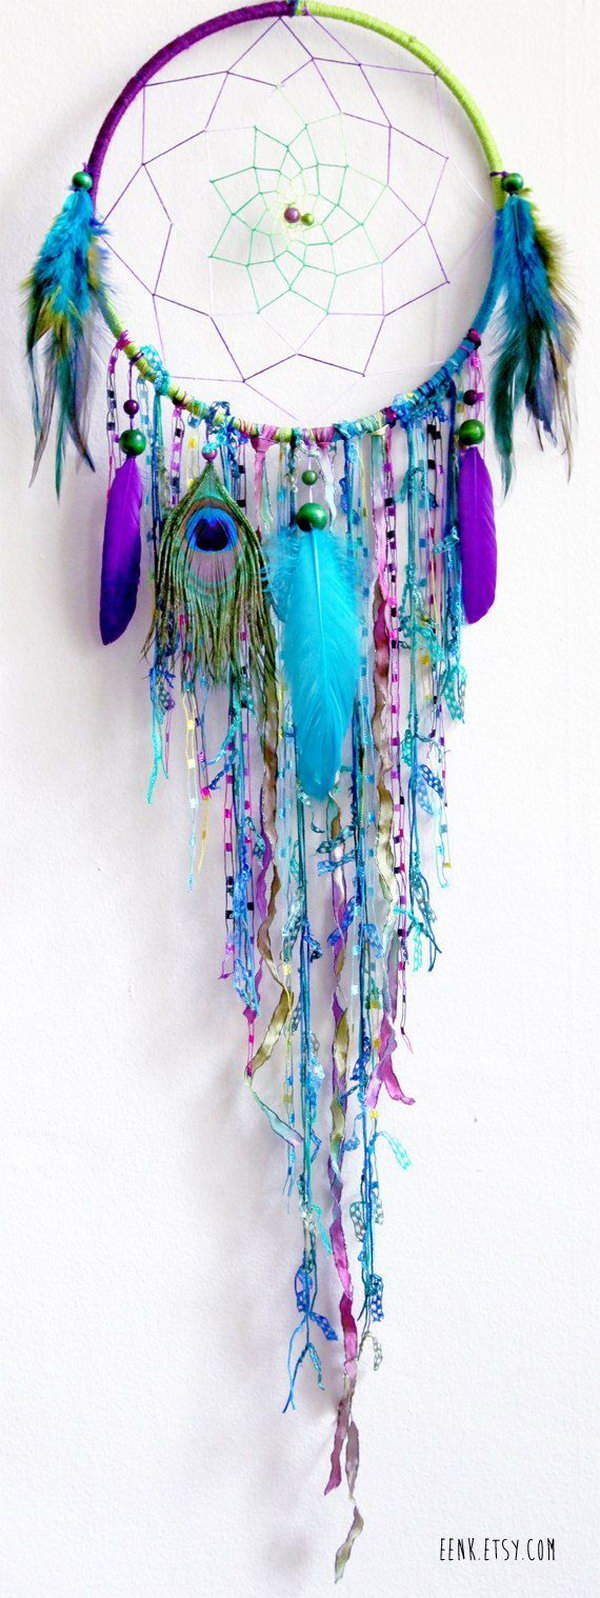 8 DIY Blue Feather and Bead Dream catcher